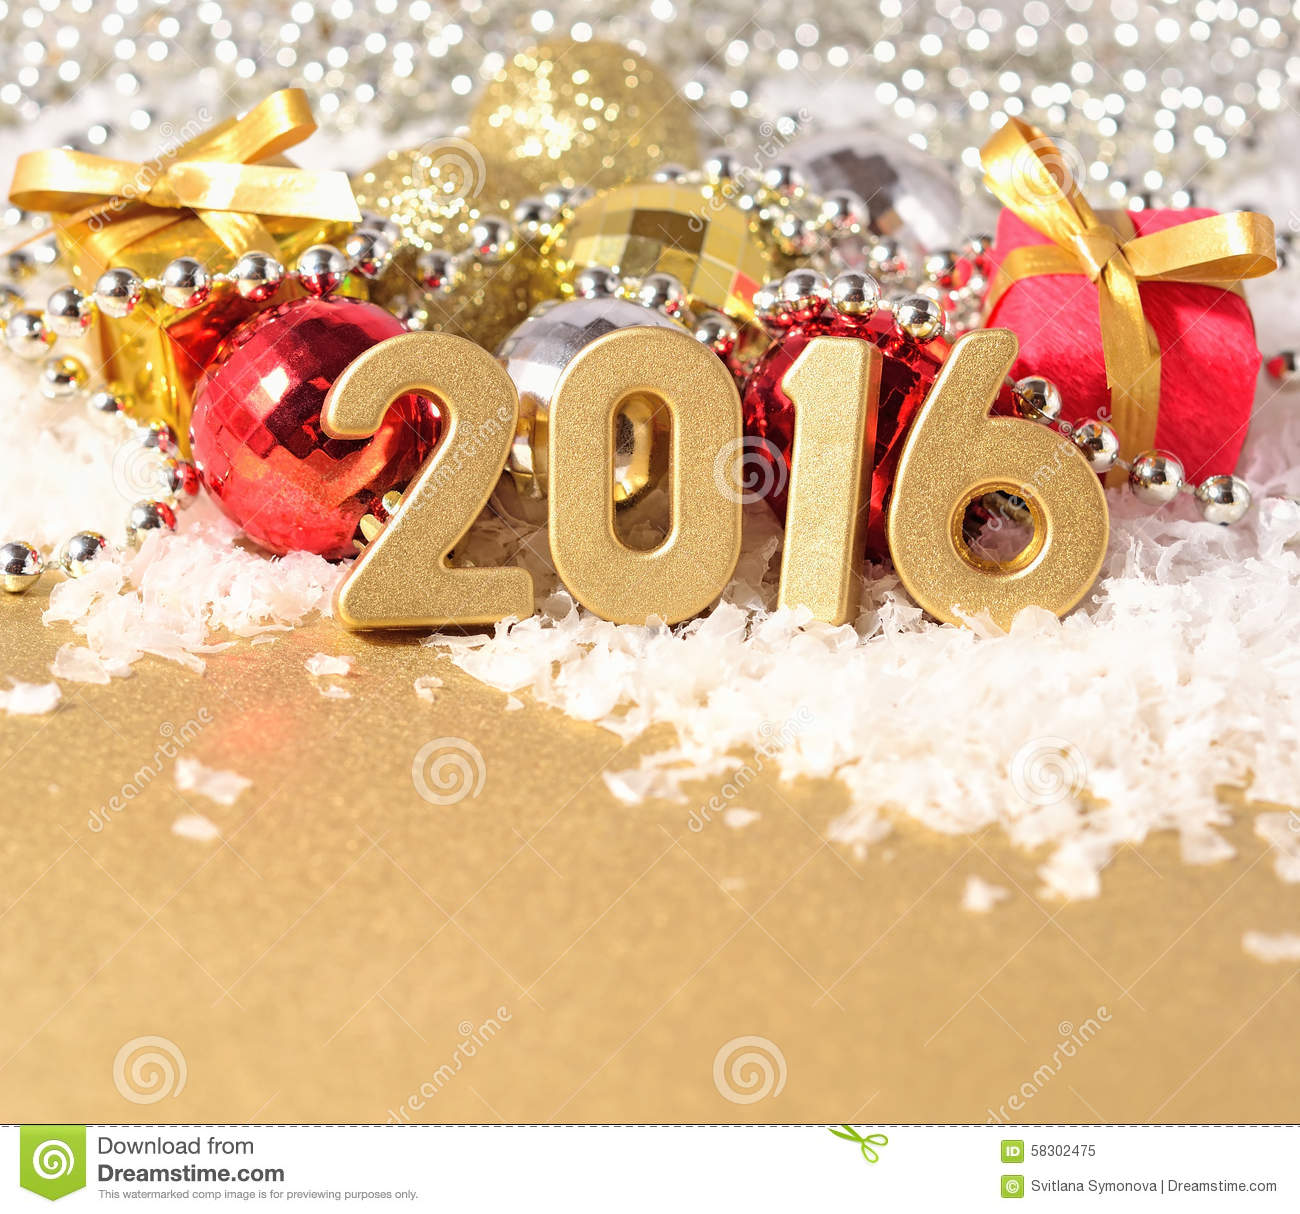 2016 Year Golden Figures And Christmas Decorations Stock Photo - Image ...